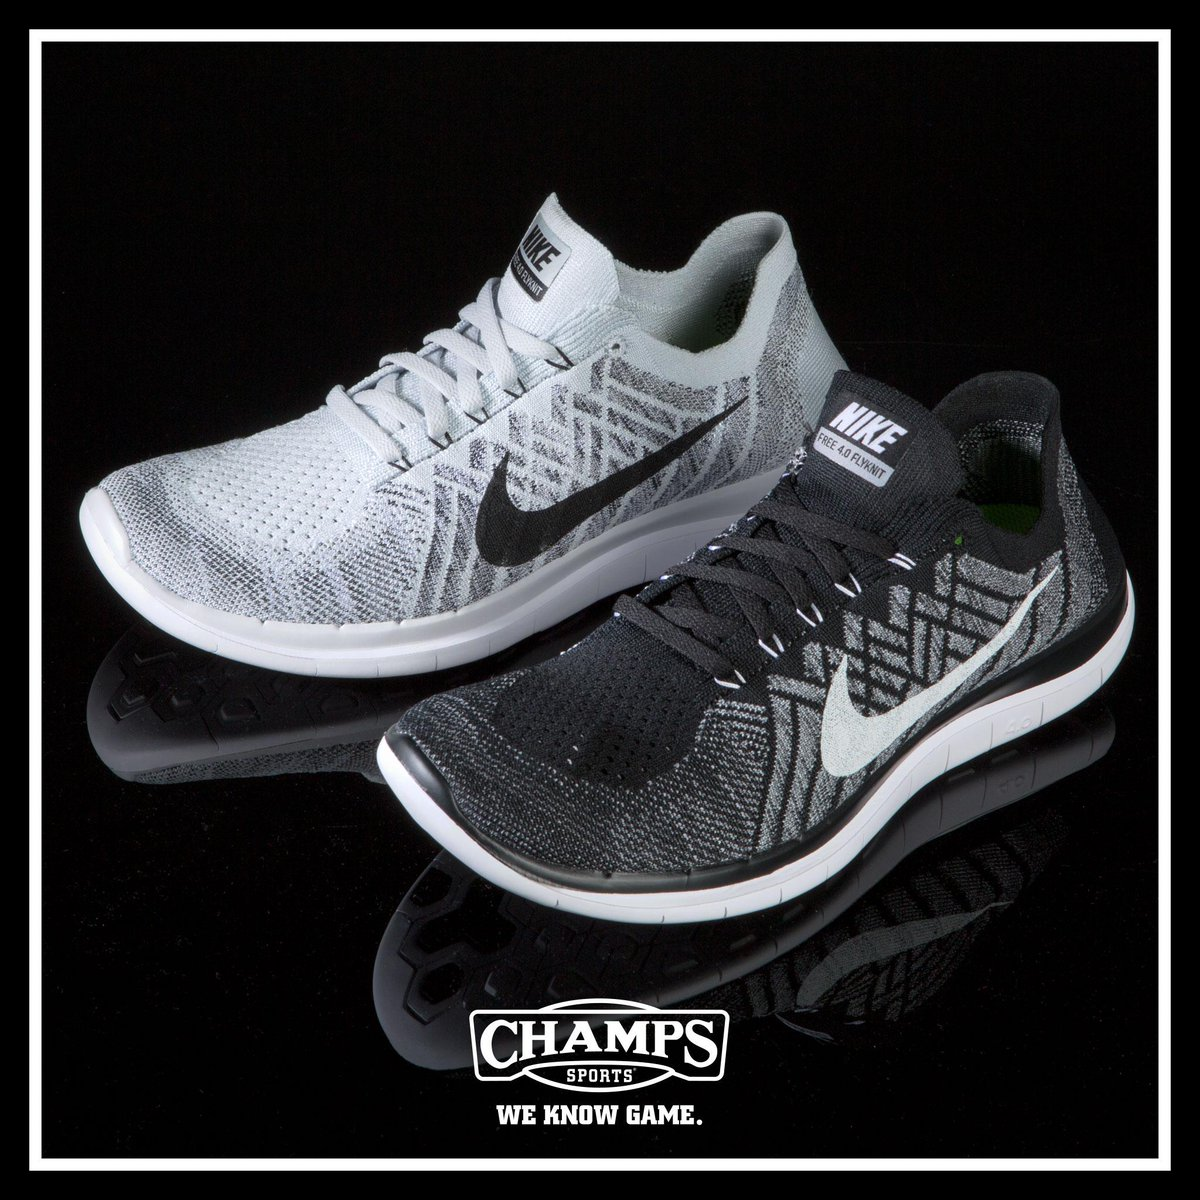 92f6a38a85192 ... Nike Free 4.0 Flyknit 2015 - Women s Champs Sports on Twitter  ...